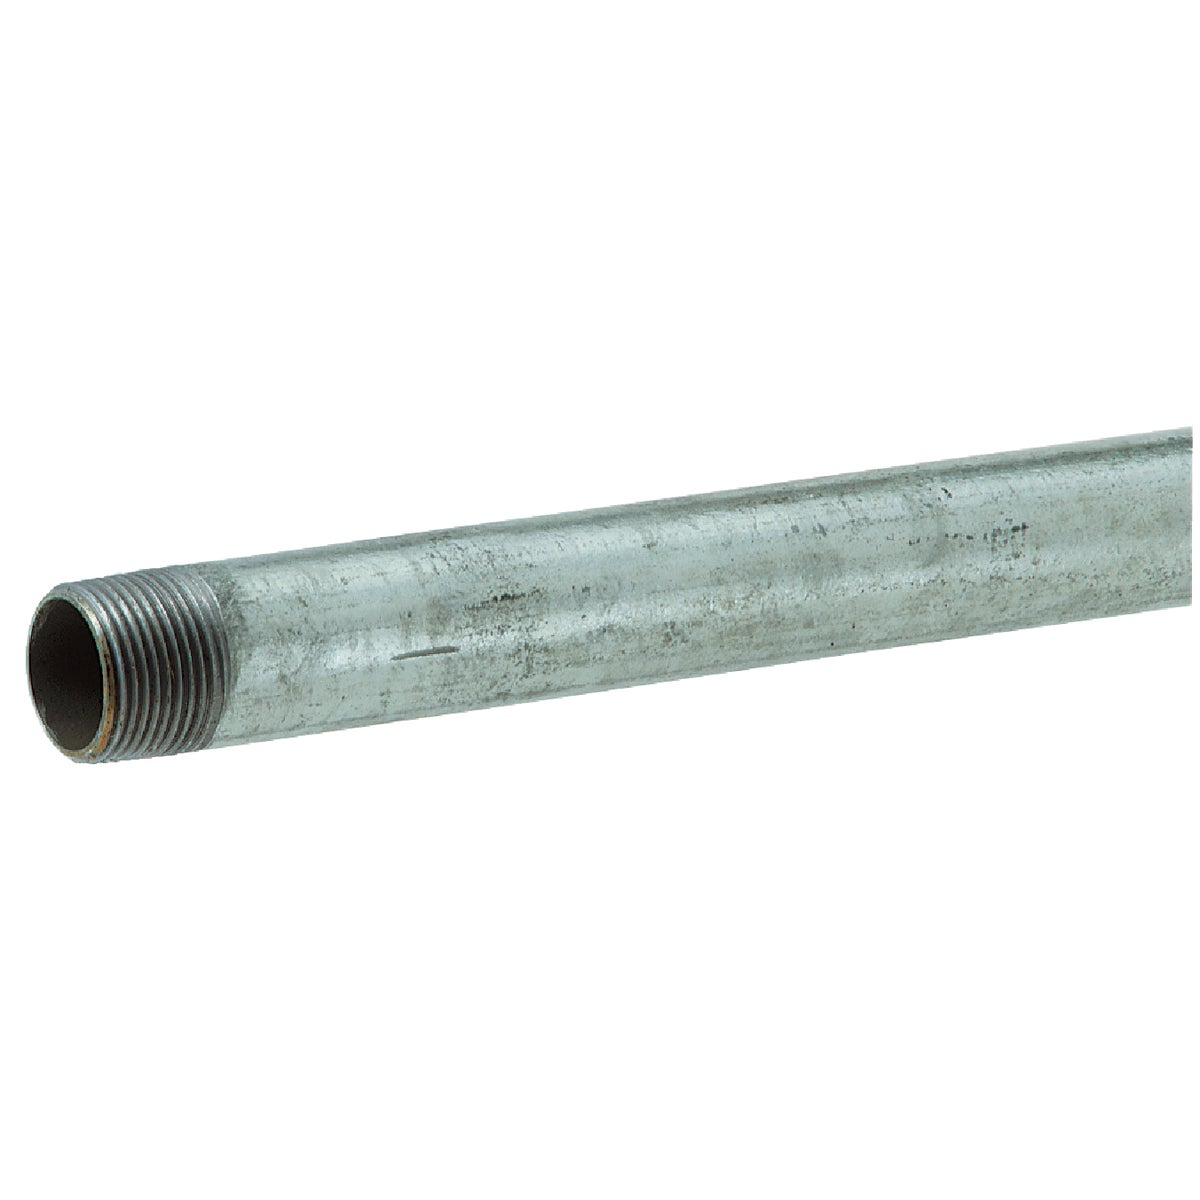 1X24 GALV RDI-CT PIPE - 1X24 by Southland Pipe Nippl